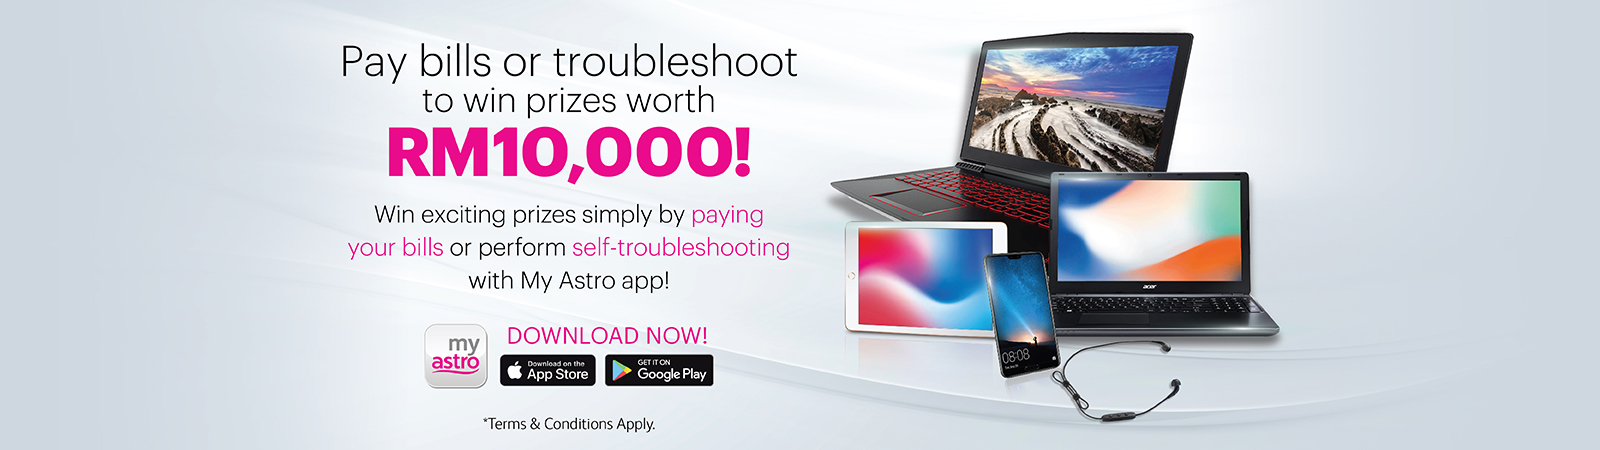 Pay bills or troubleshoot to win prizes worth RM10,000!